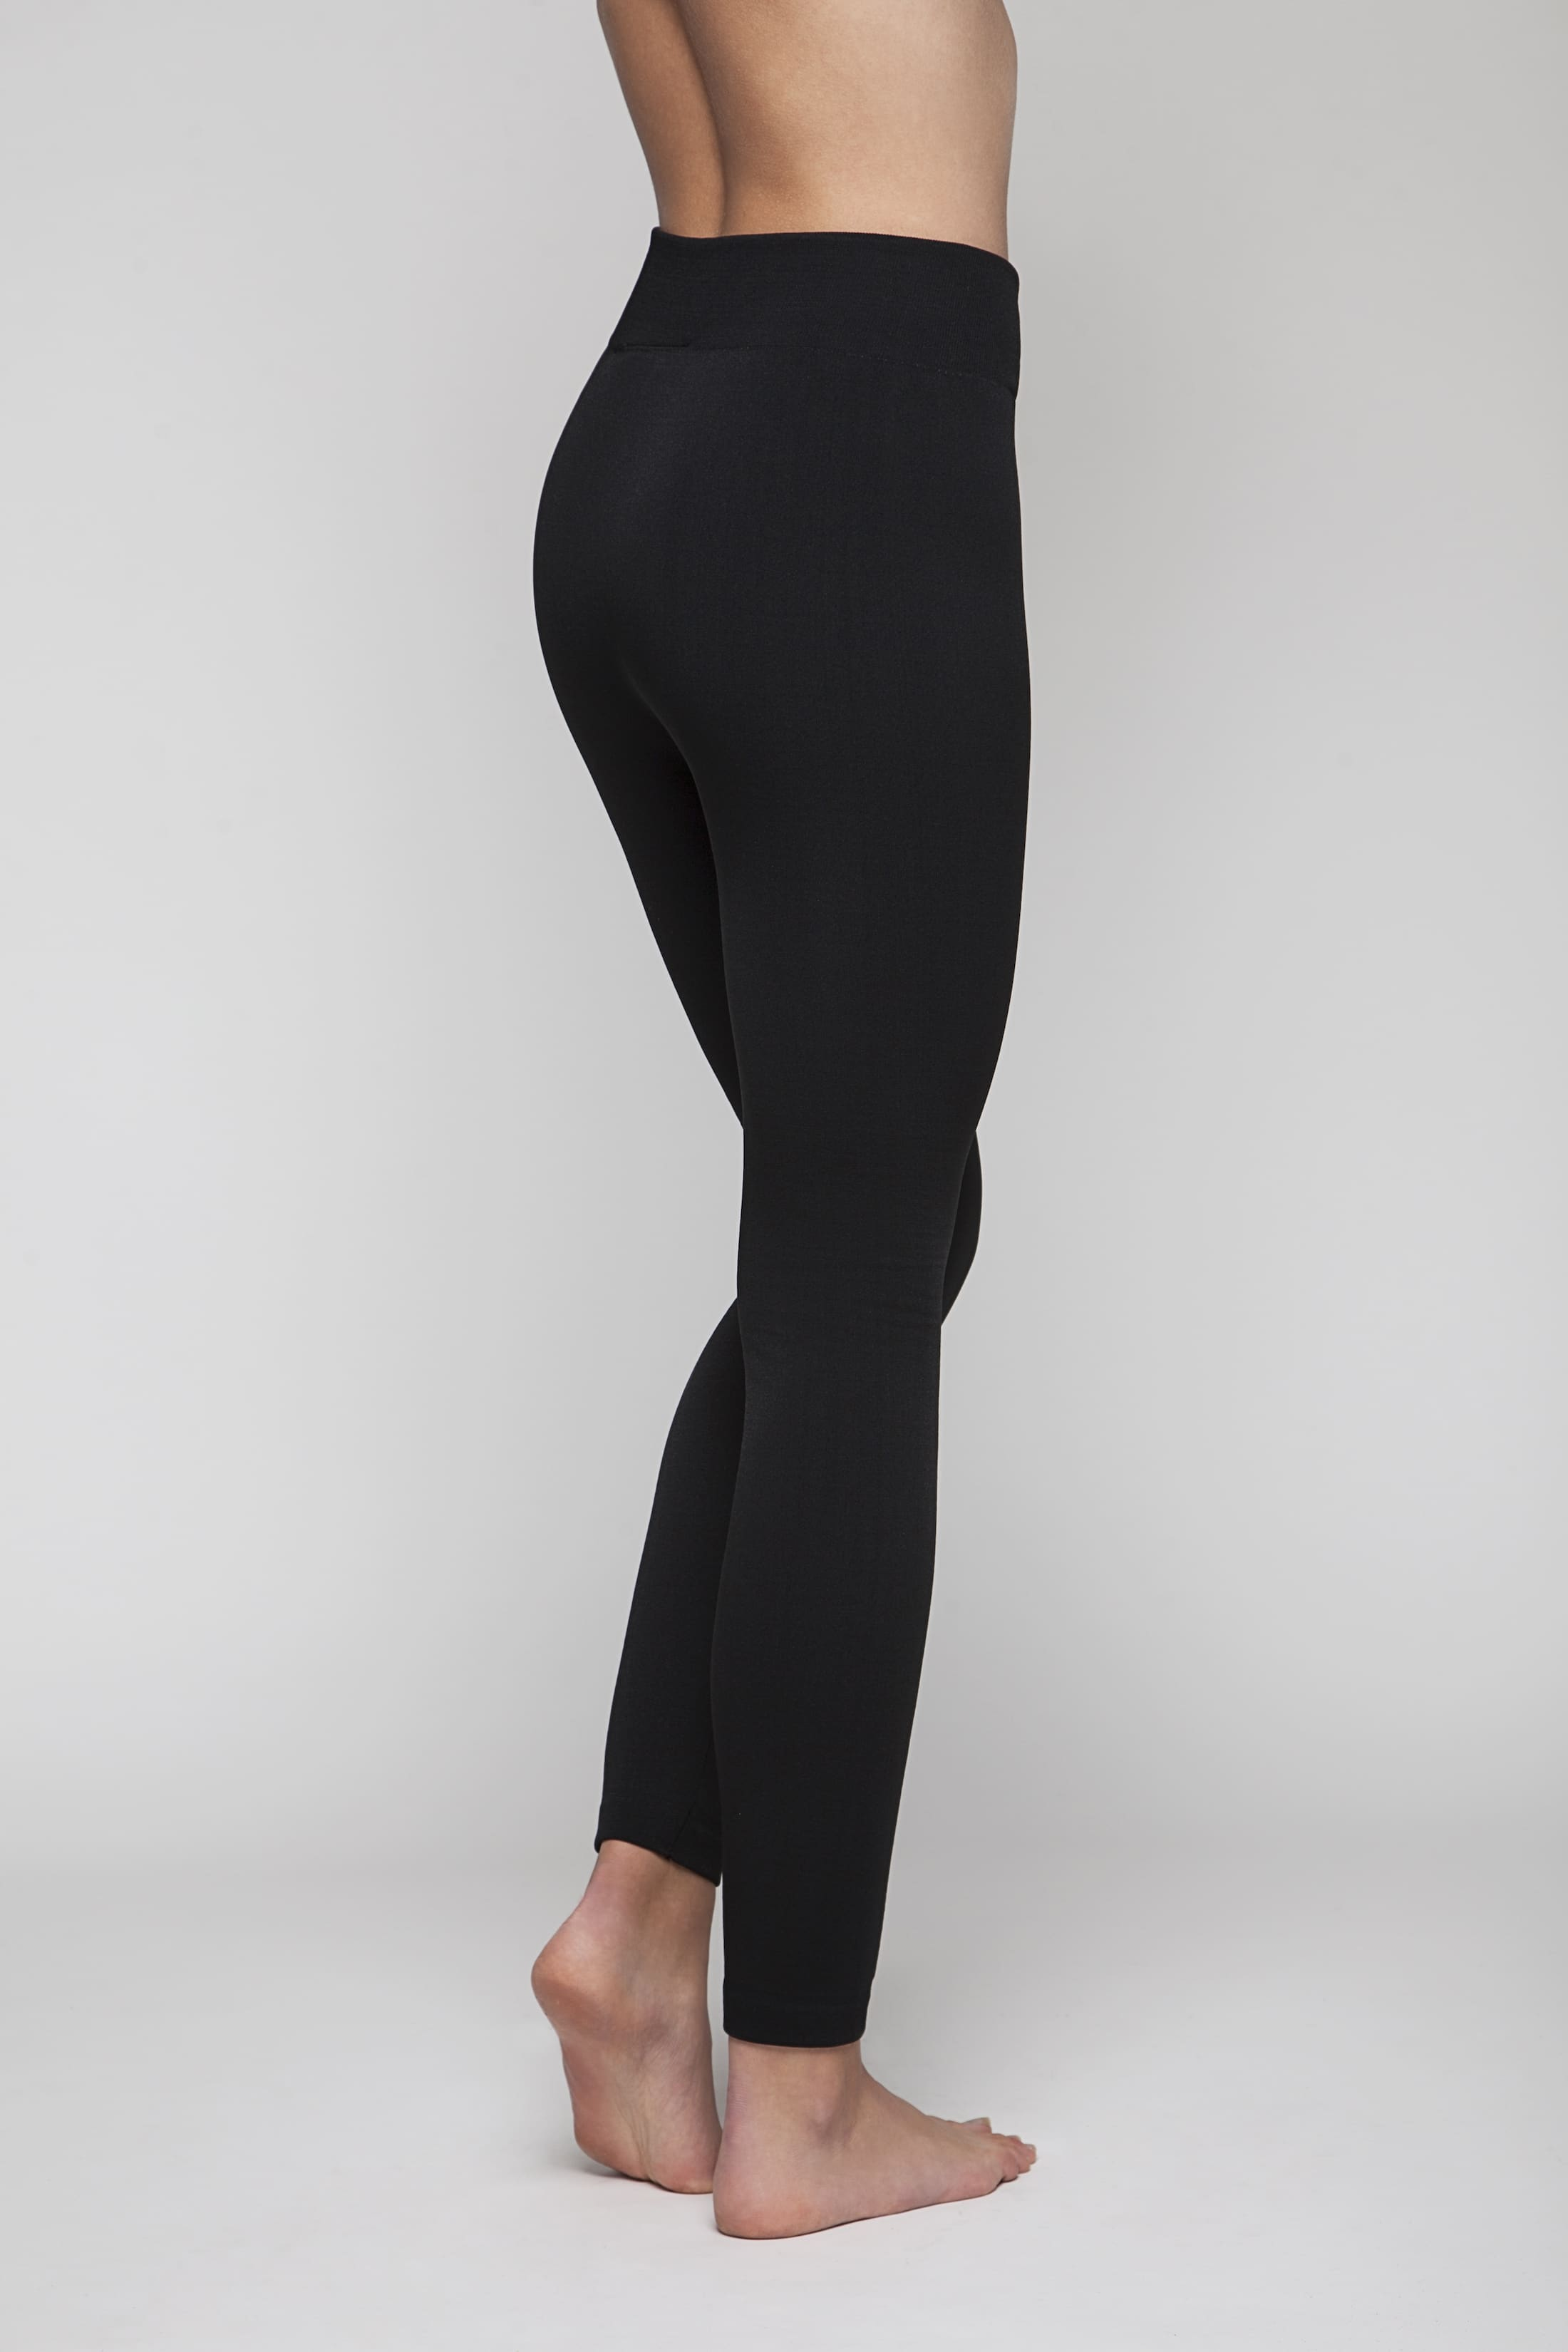 Black super-soft comfortable leggings